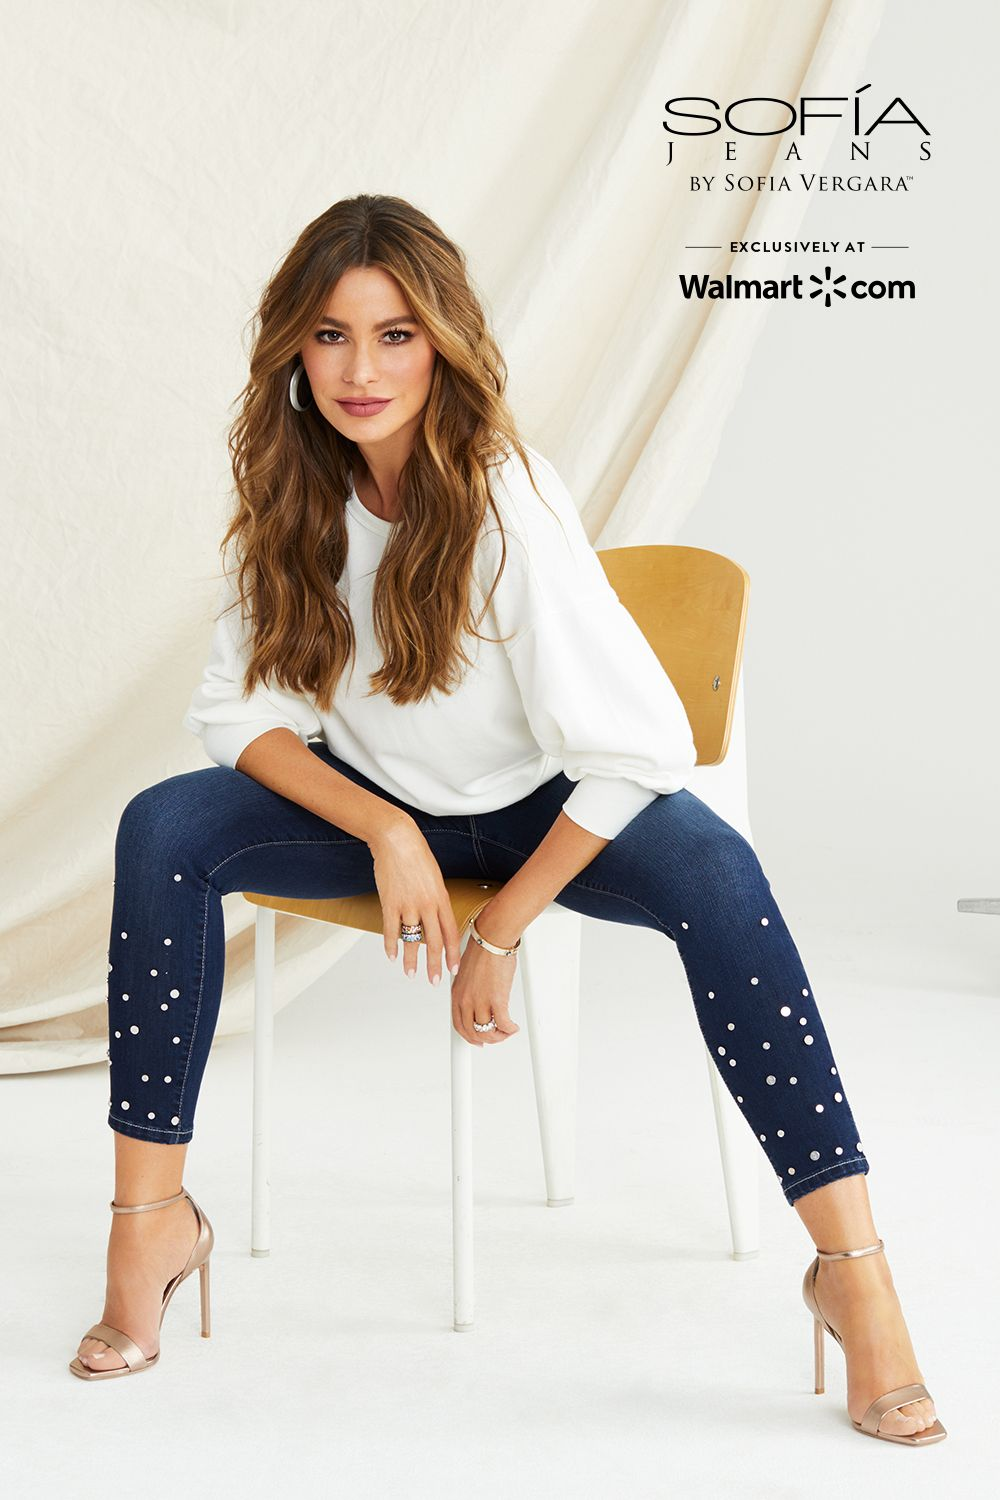 ac57759c59 Introducing Sofía Jeans by Sofía Vergara, exclusively at Walmart.com ...